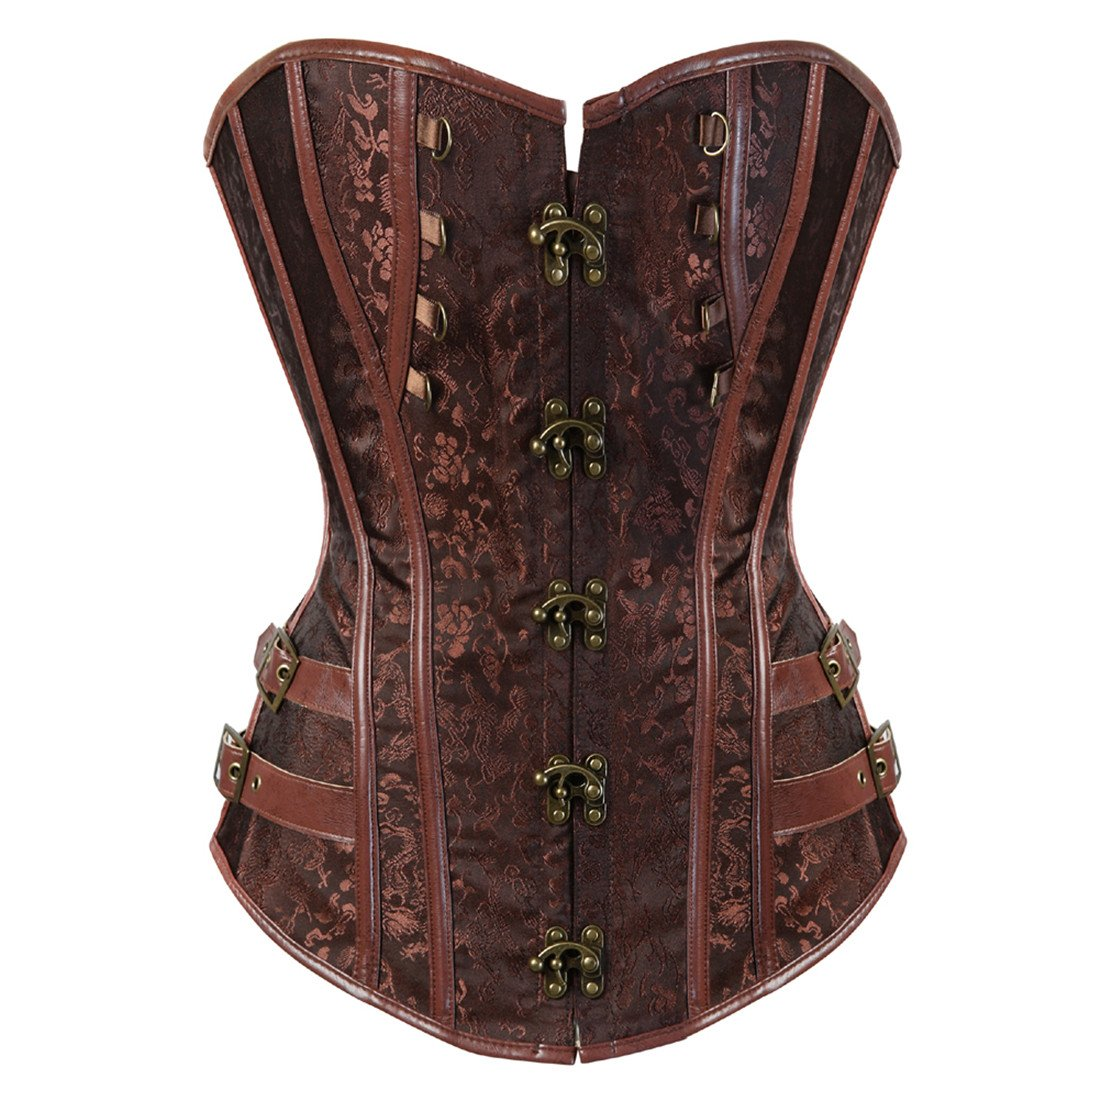 Women's Retro Goth Brocade Steampunk Corsets Halloween Burlesque Bustiers Top CA-5829+8106+8107+8110